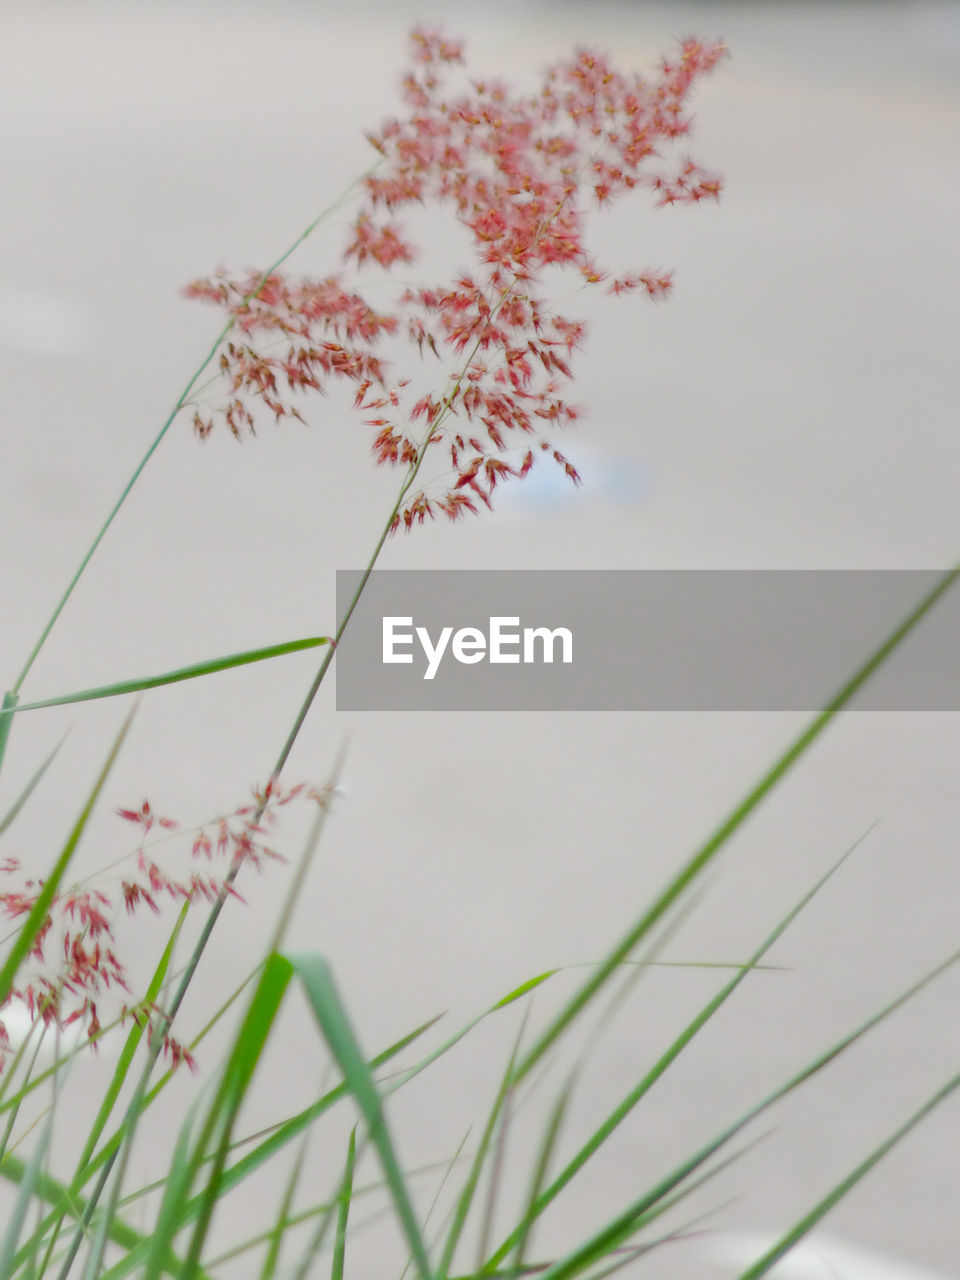 plant, growth, nature, beauty in nature, flowering plant, selective focus, no people, day, close-up, vulnerability, flower, fragility, focus on foreground, tranquility, outdoors, freshness, sky, grass, field, plant stem